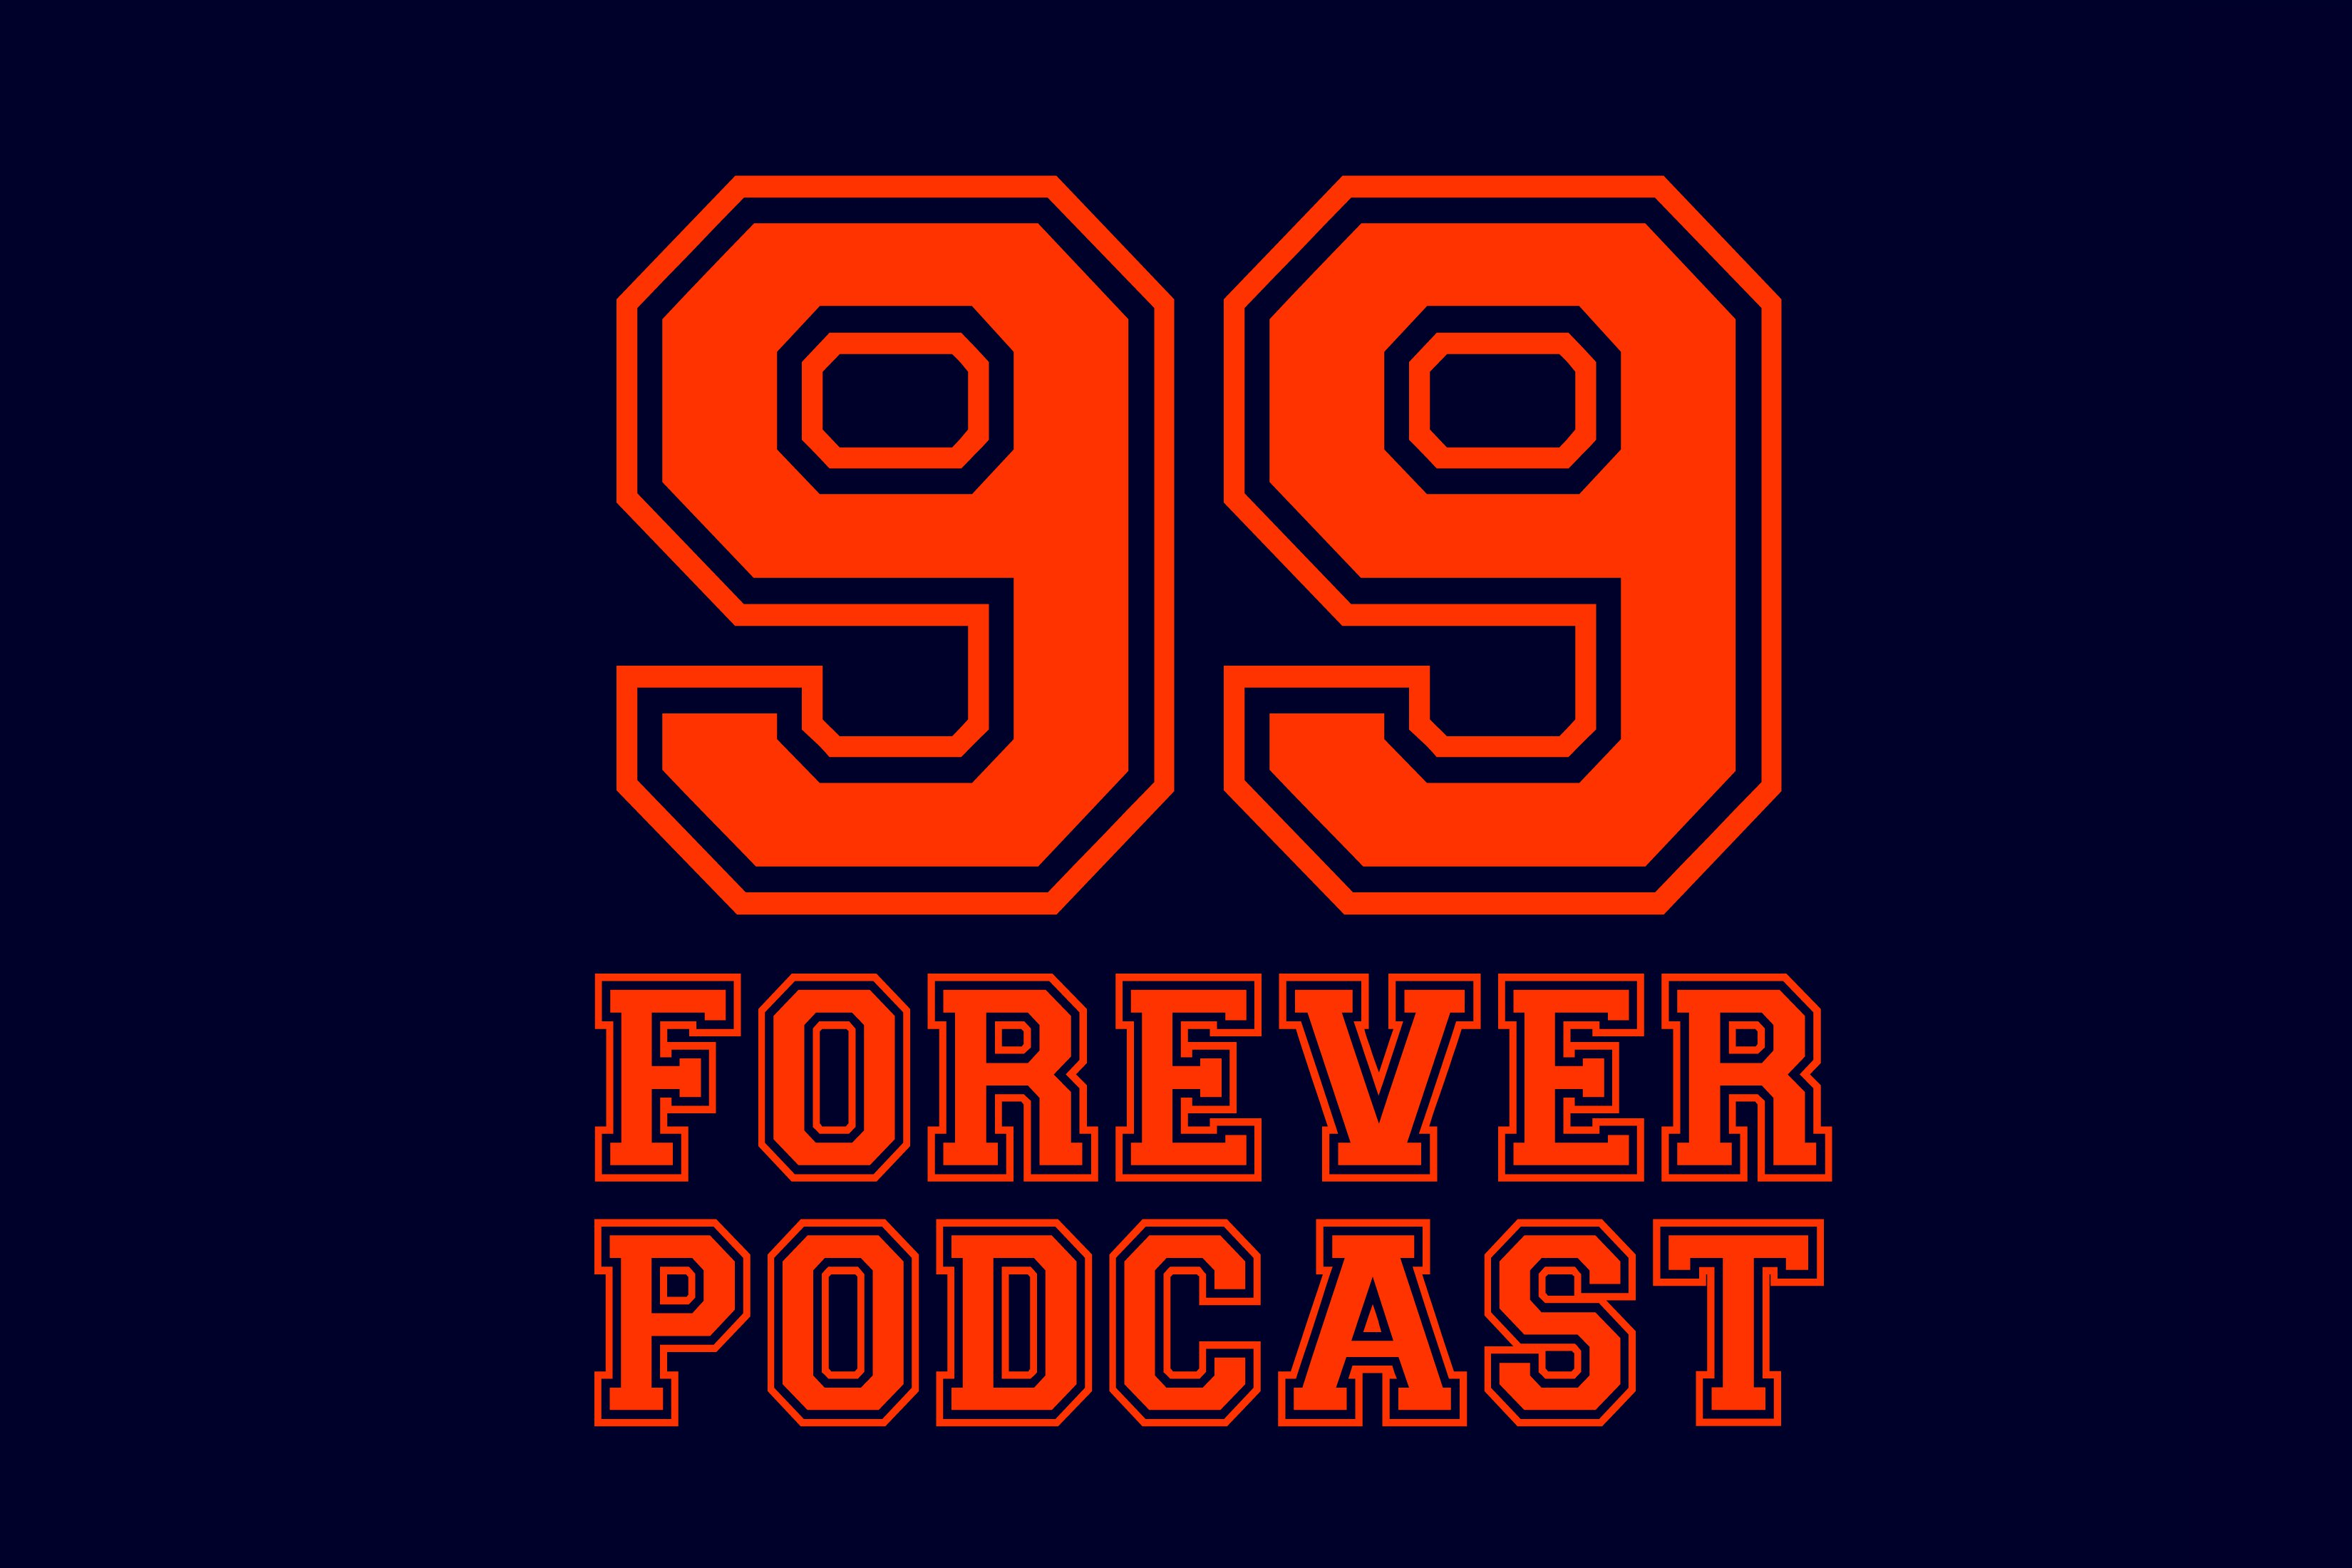 99 Forever Podcast ep 13 with Kirk Morris show art